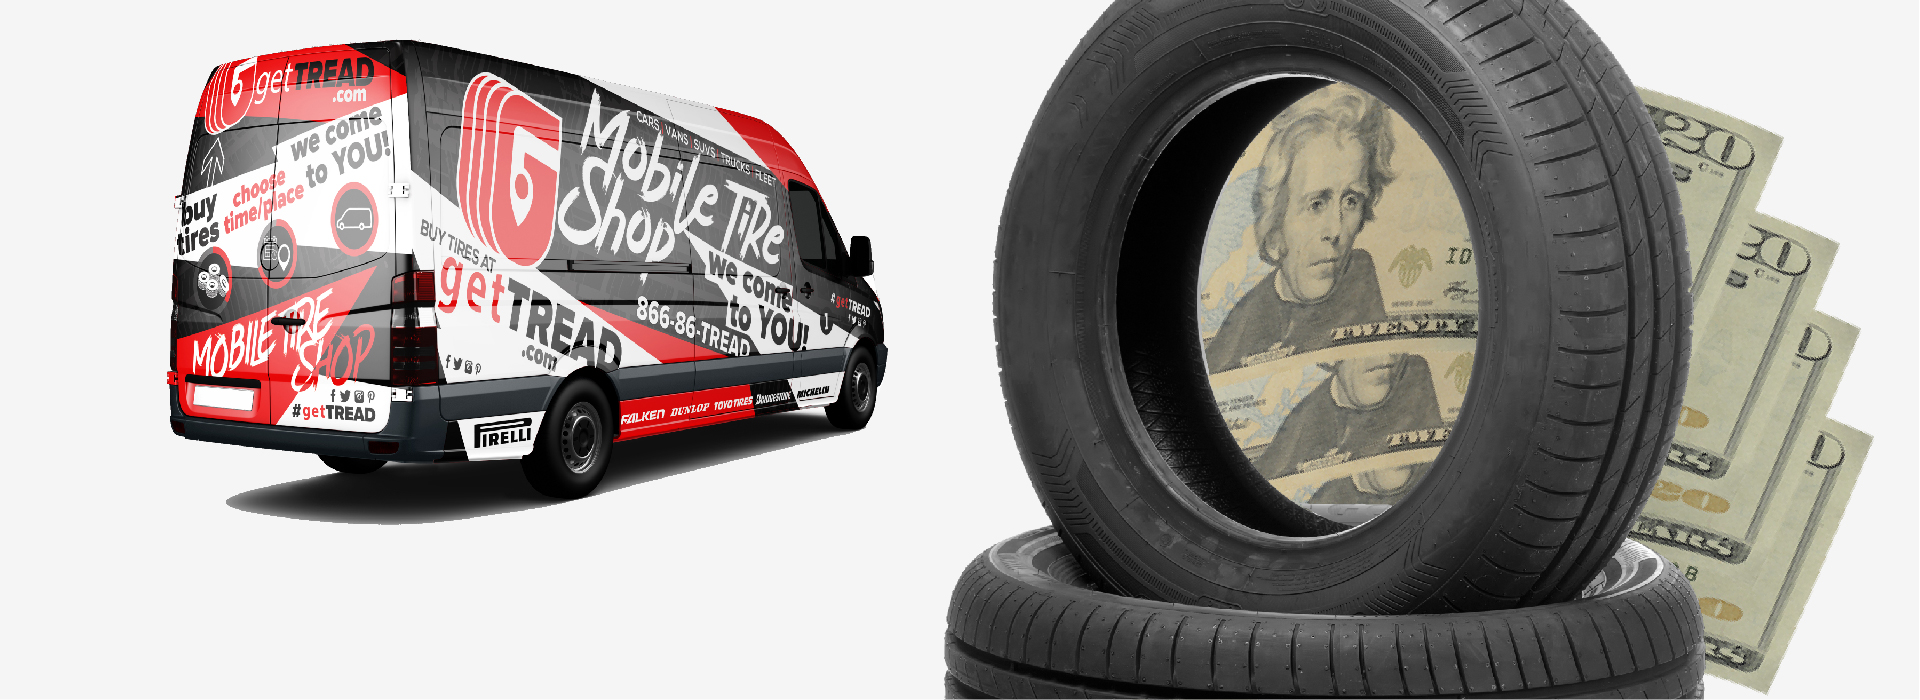 Save money on your tires with our special offers